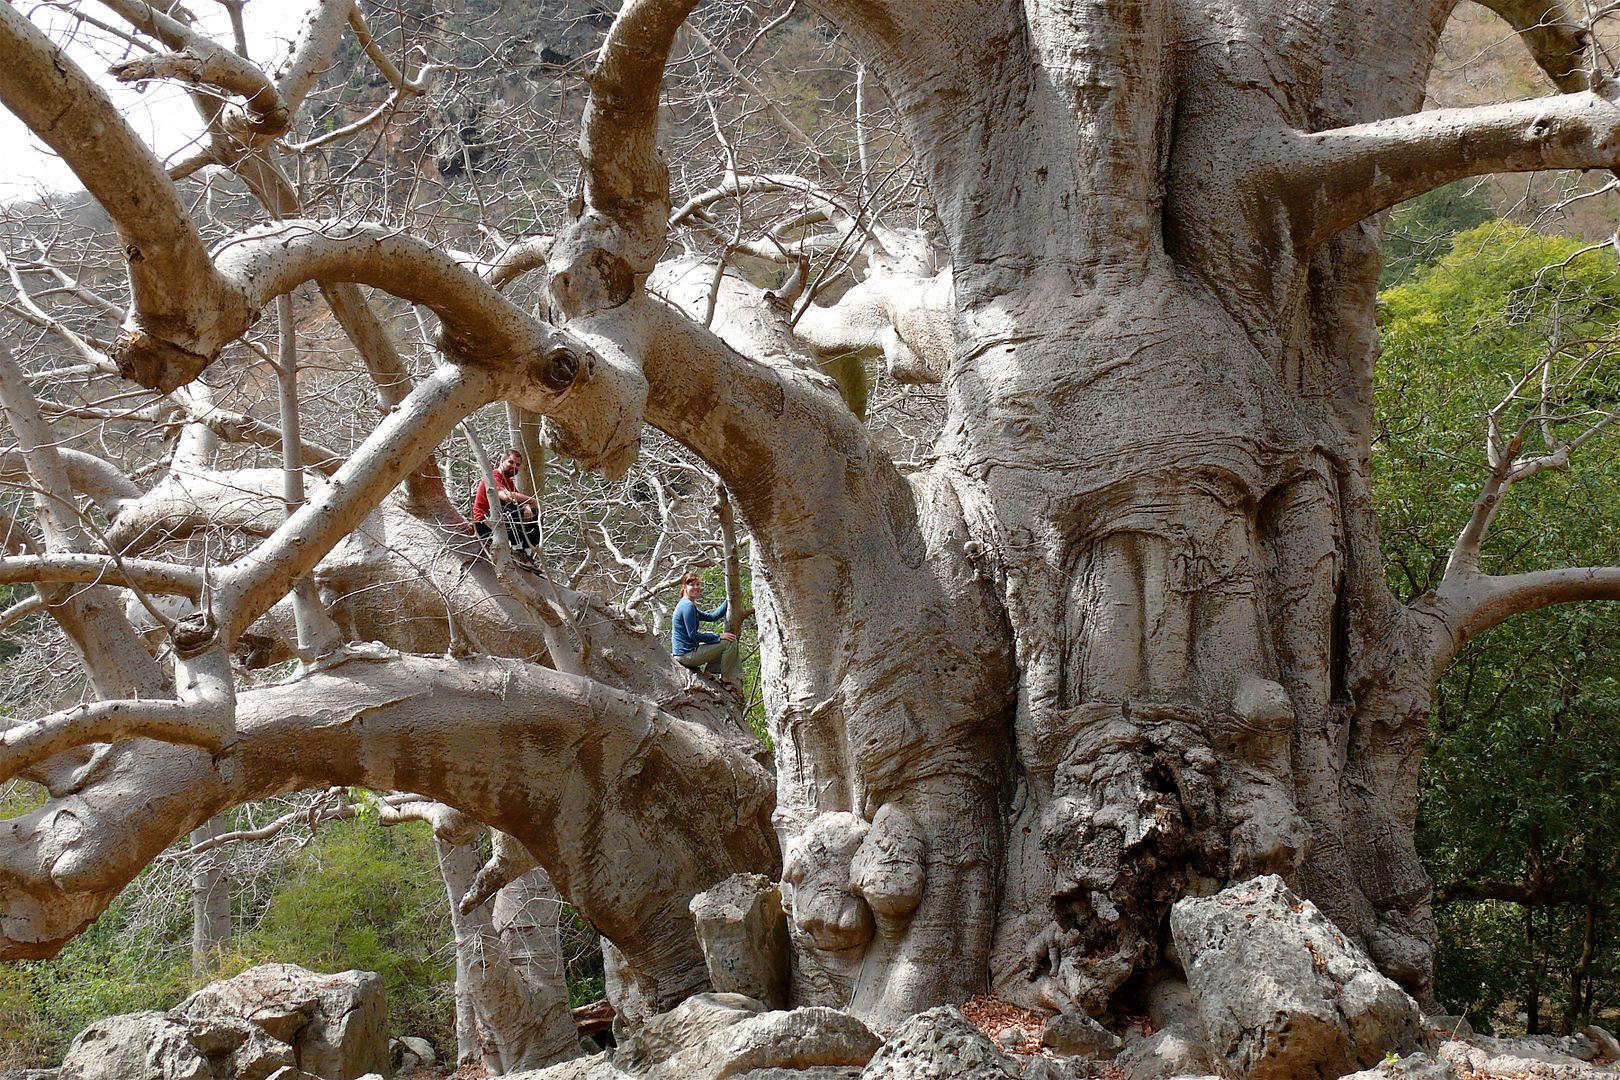 2012.02.22, I LOVE this tree! It is a variety of baobab which originate in Africa. (Salalah, Oman)